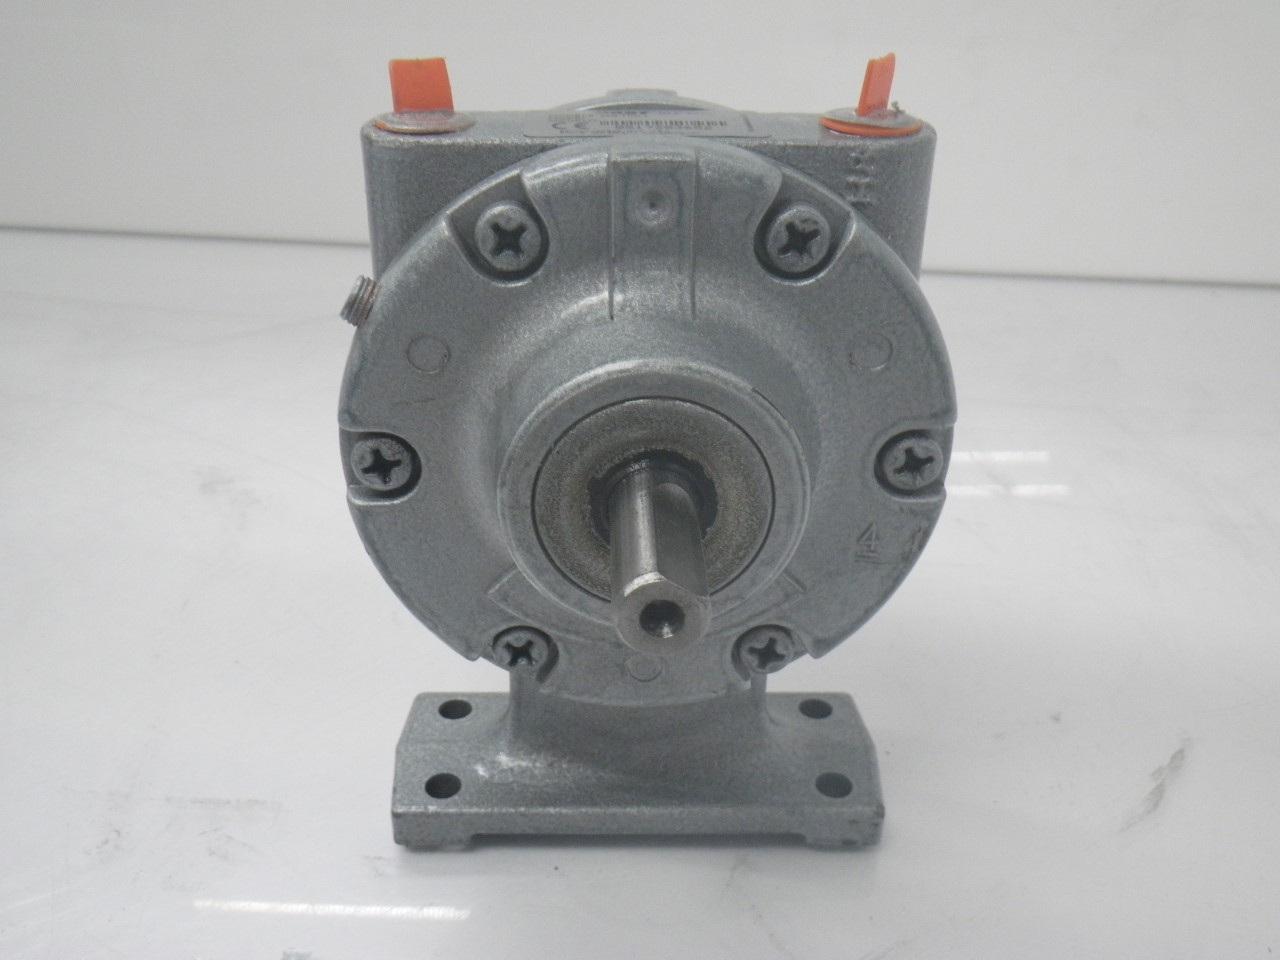 IMGP11832AM-FCC-1 Gast Air Motor (Used Tested) (Very Good Condition) (5)